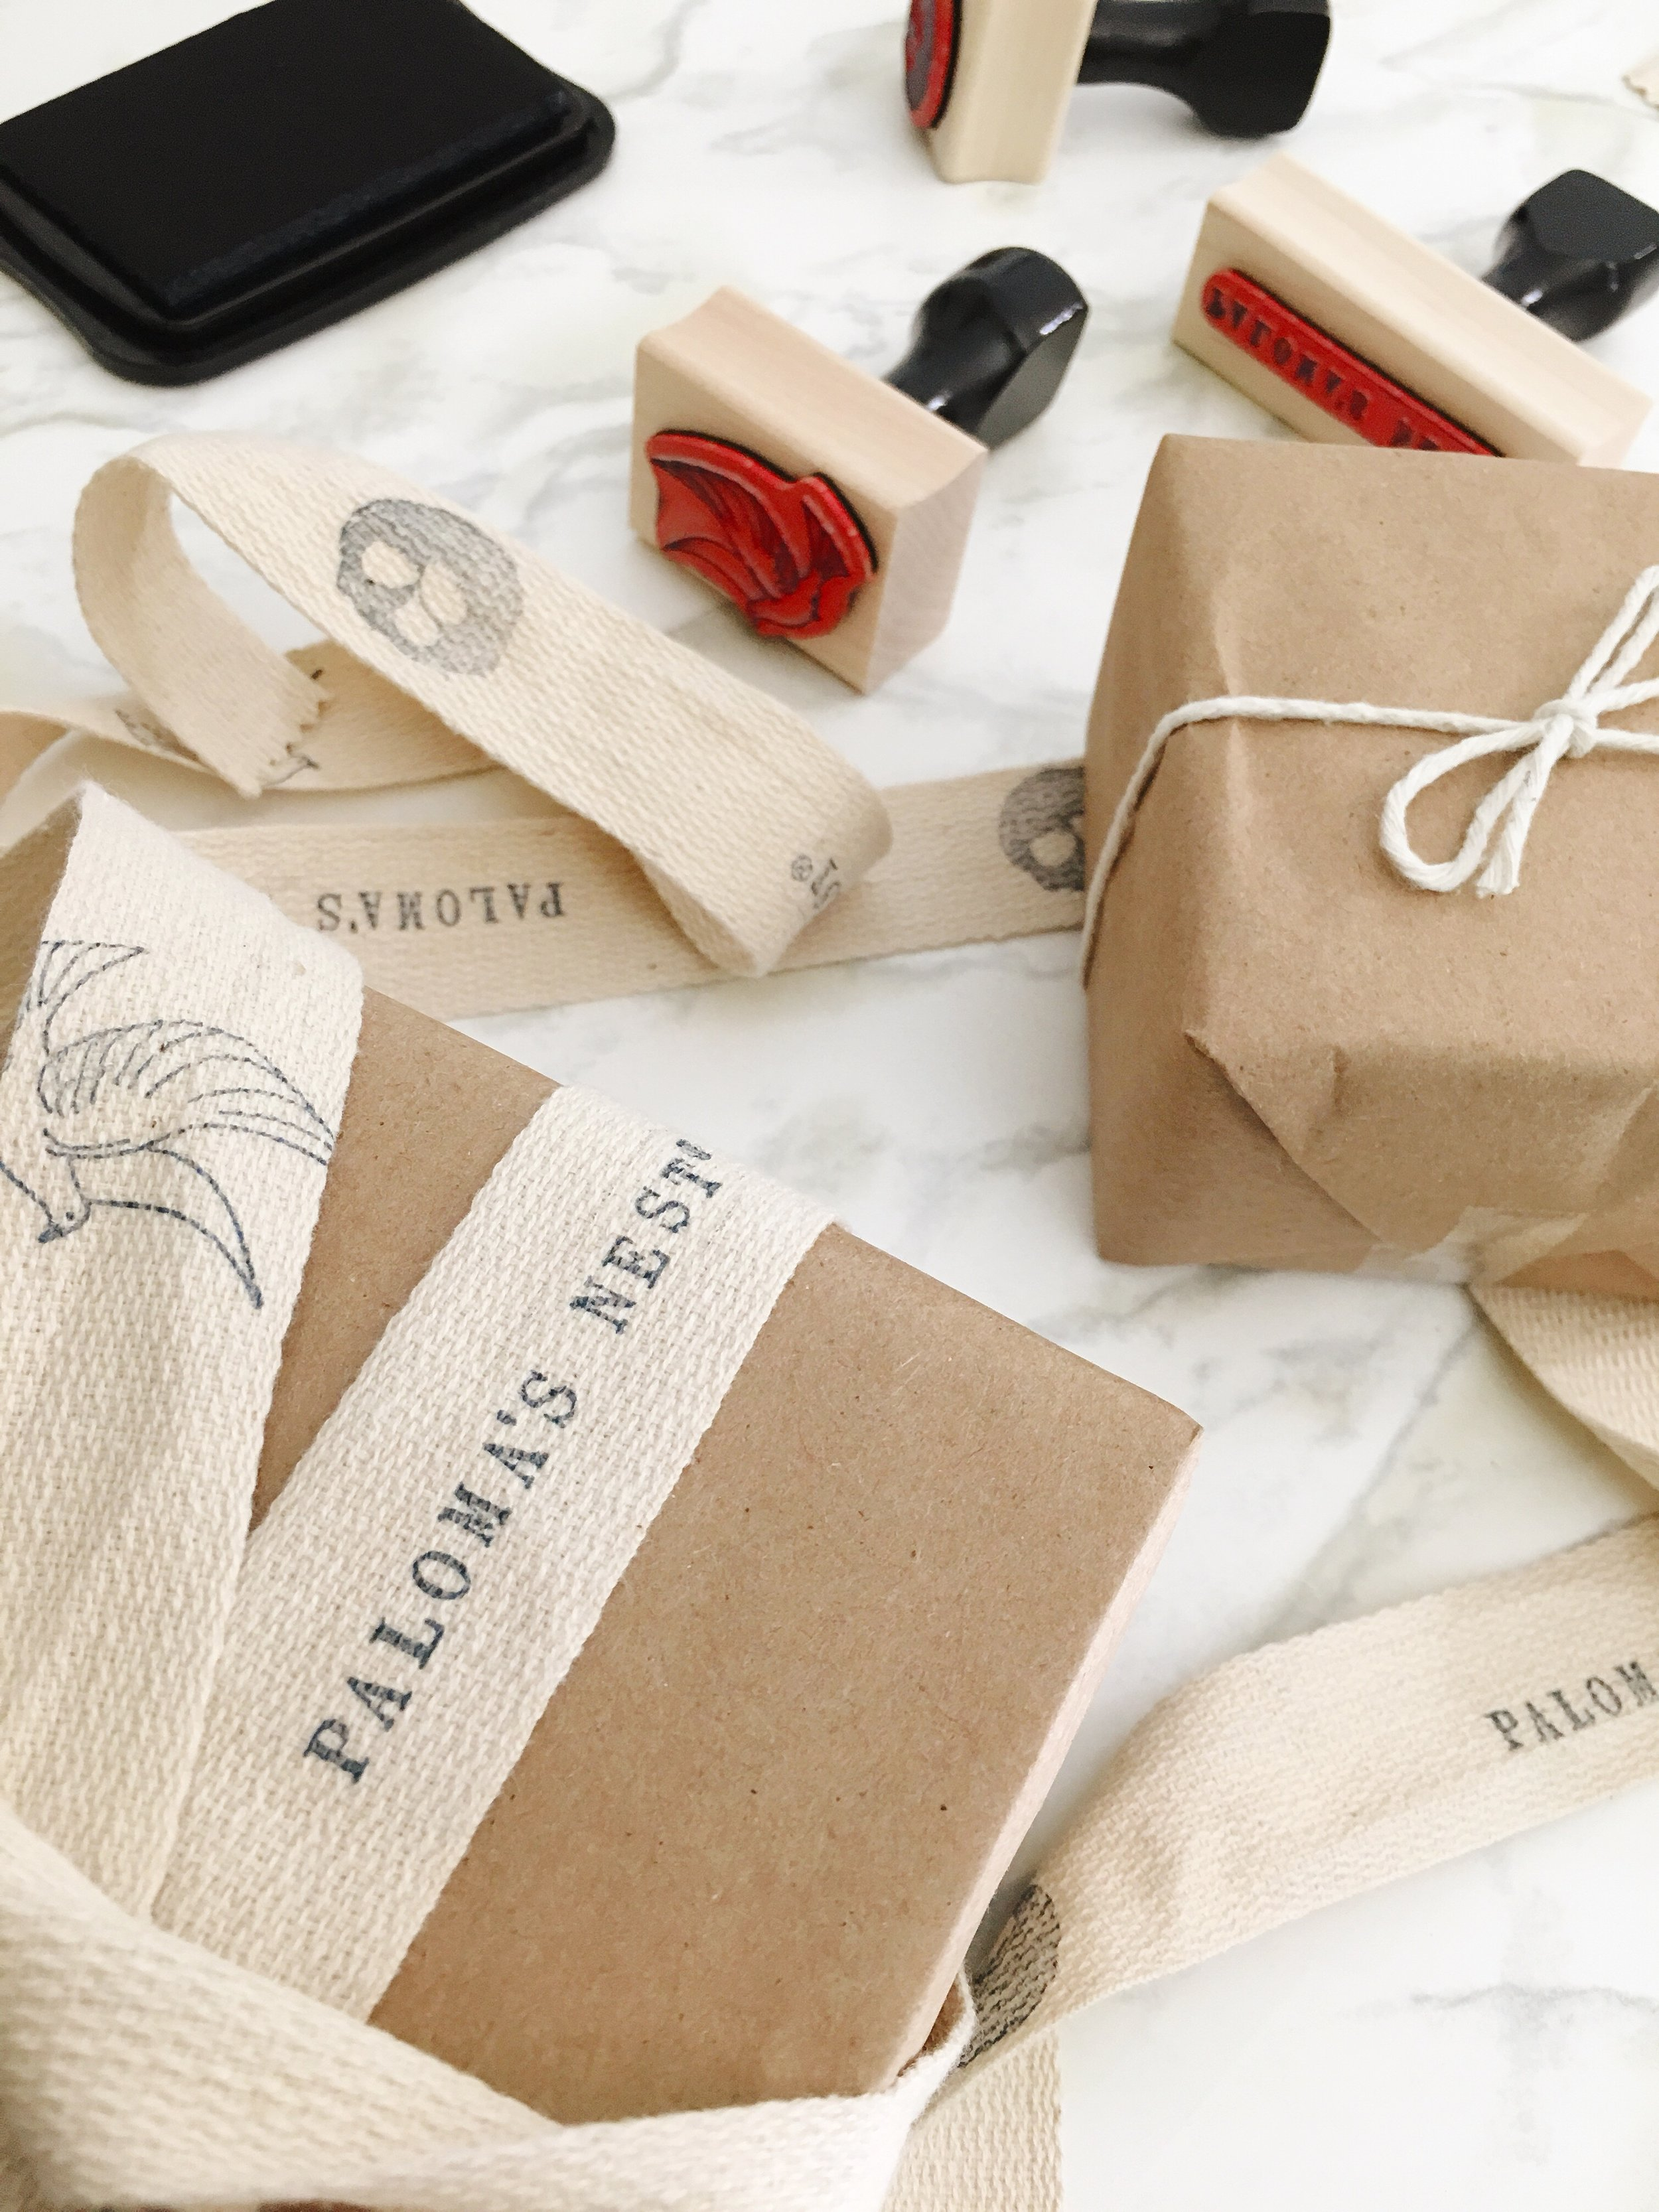 Creatiate Rubber Stamps Pretty Packaging Project 4.jpg